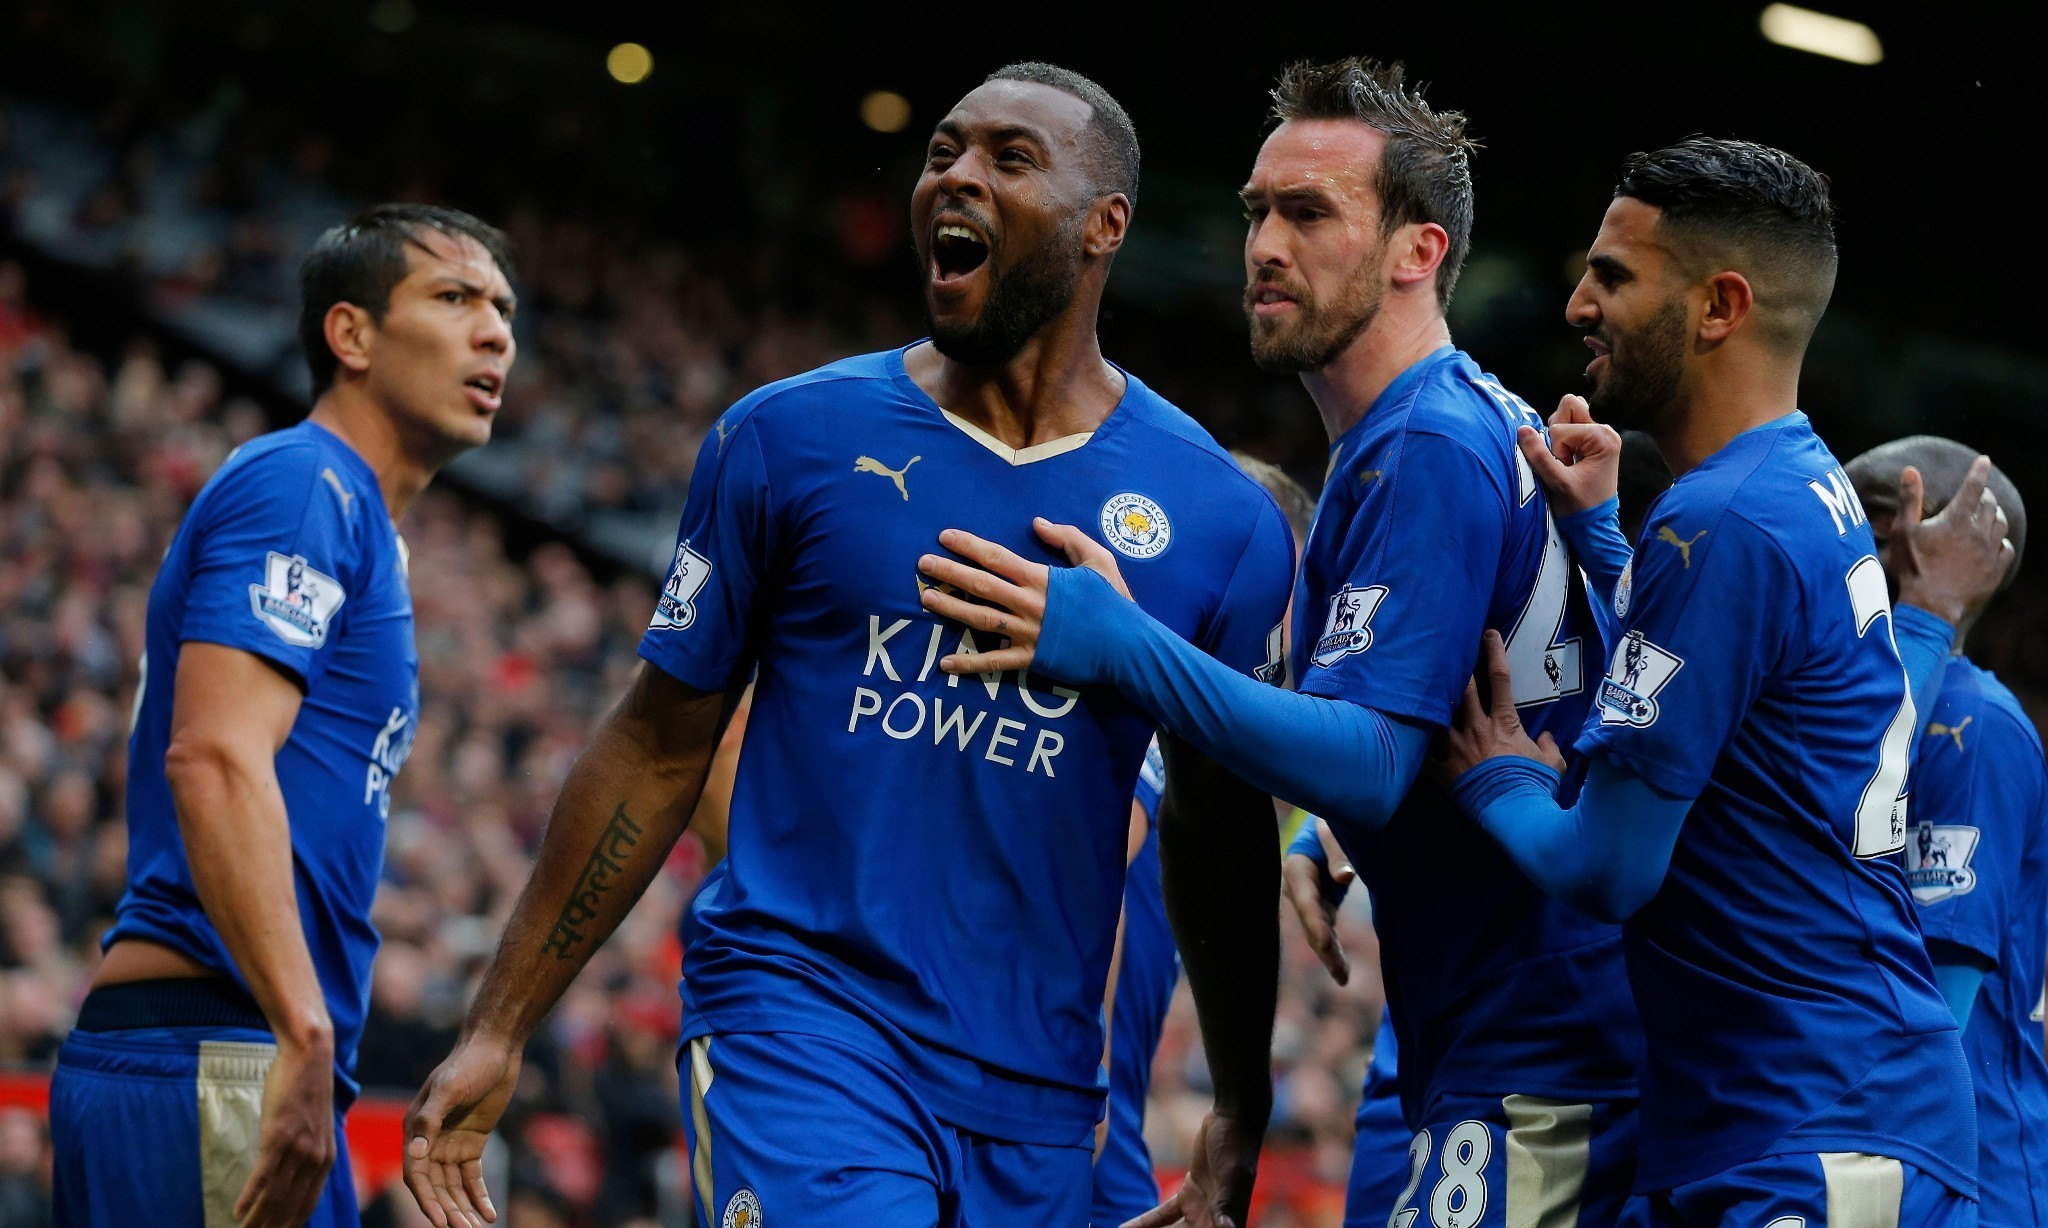 Leicester City's triumph: the inside story of an extraordinary season